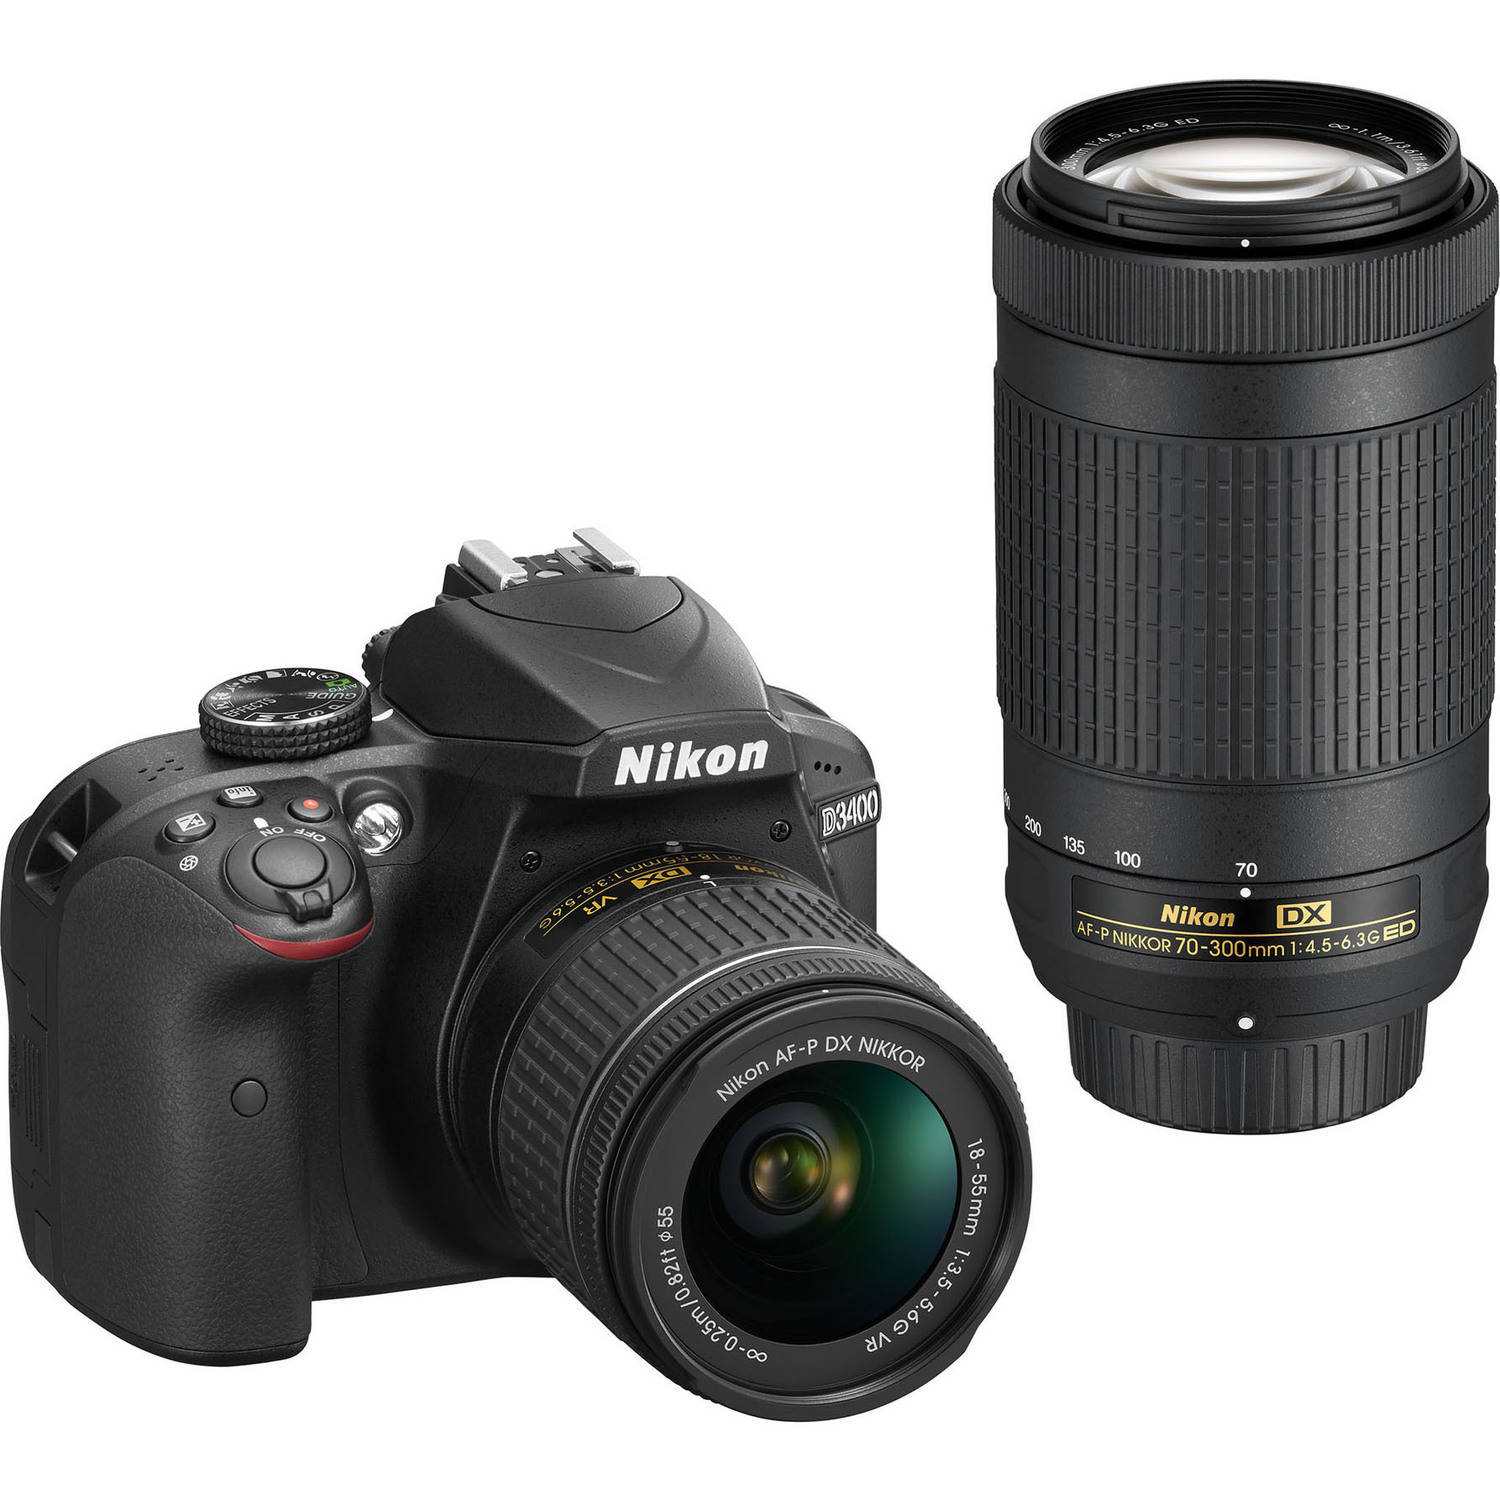 Nikon D3400 Digital SLR Camera with 24.2 Megapixels and 18-55mm and 70-300mm Lenses Included